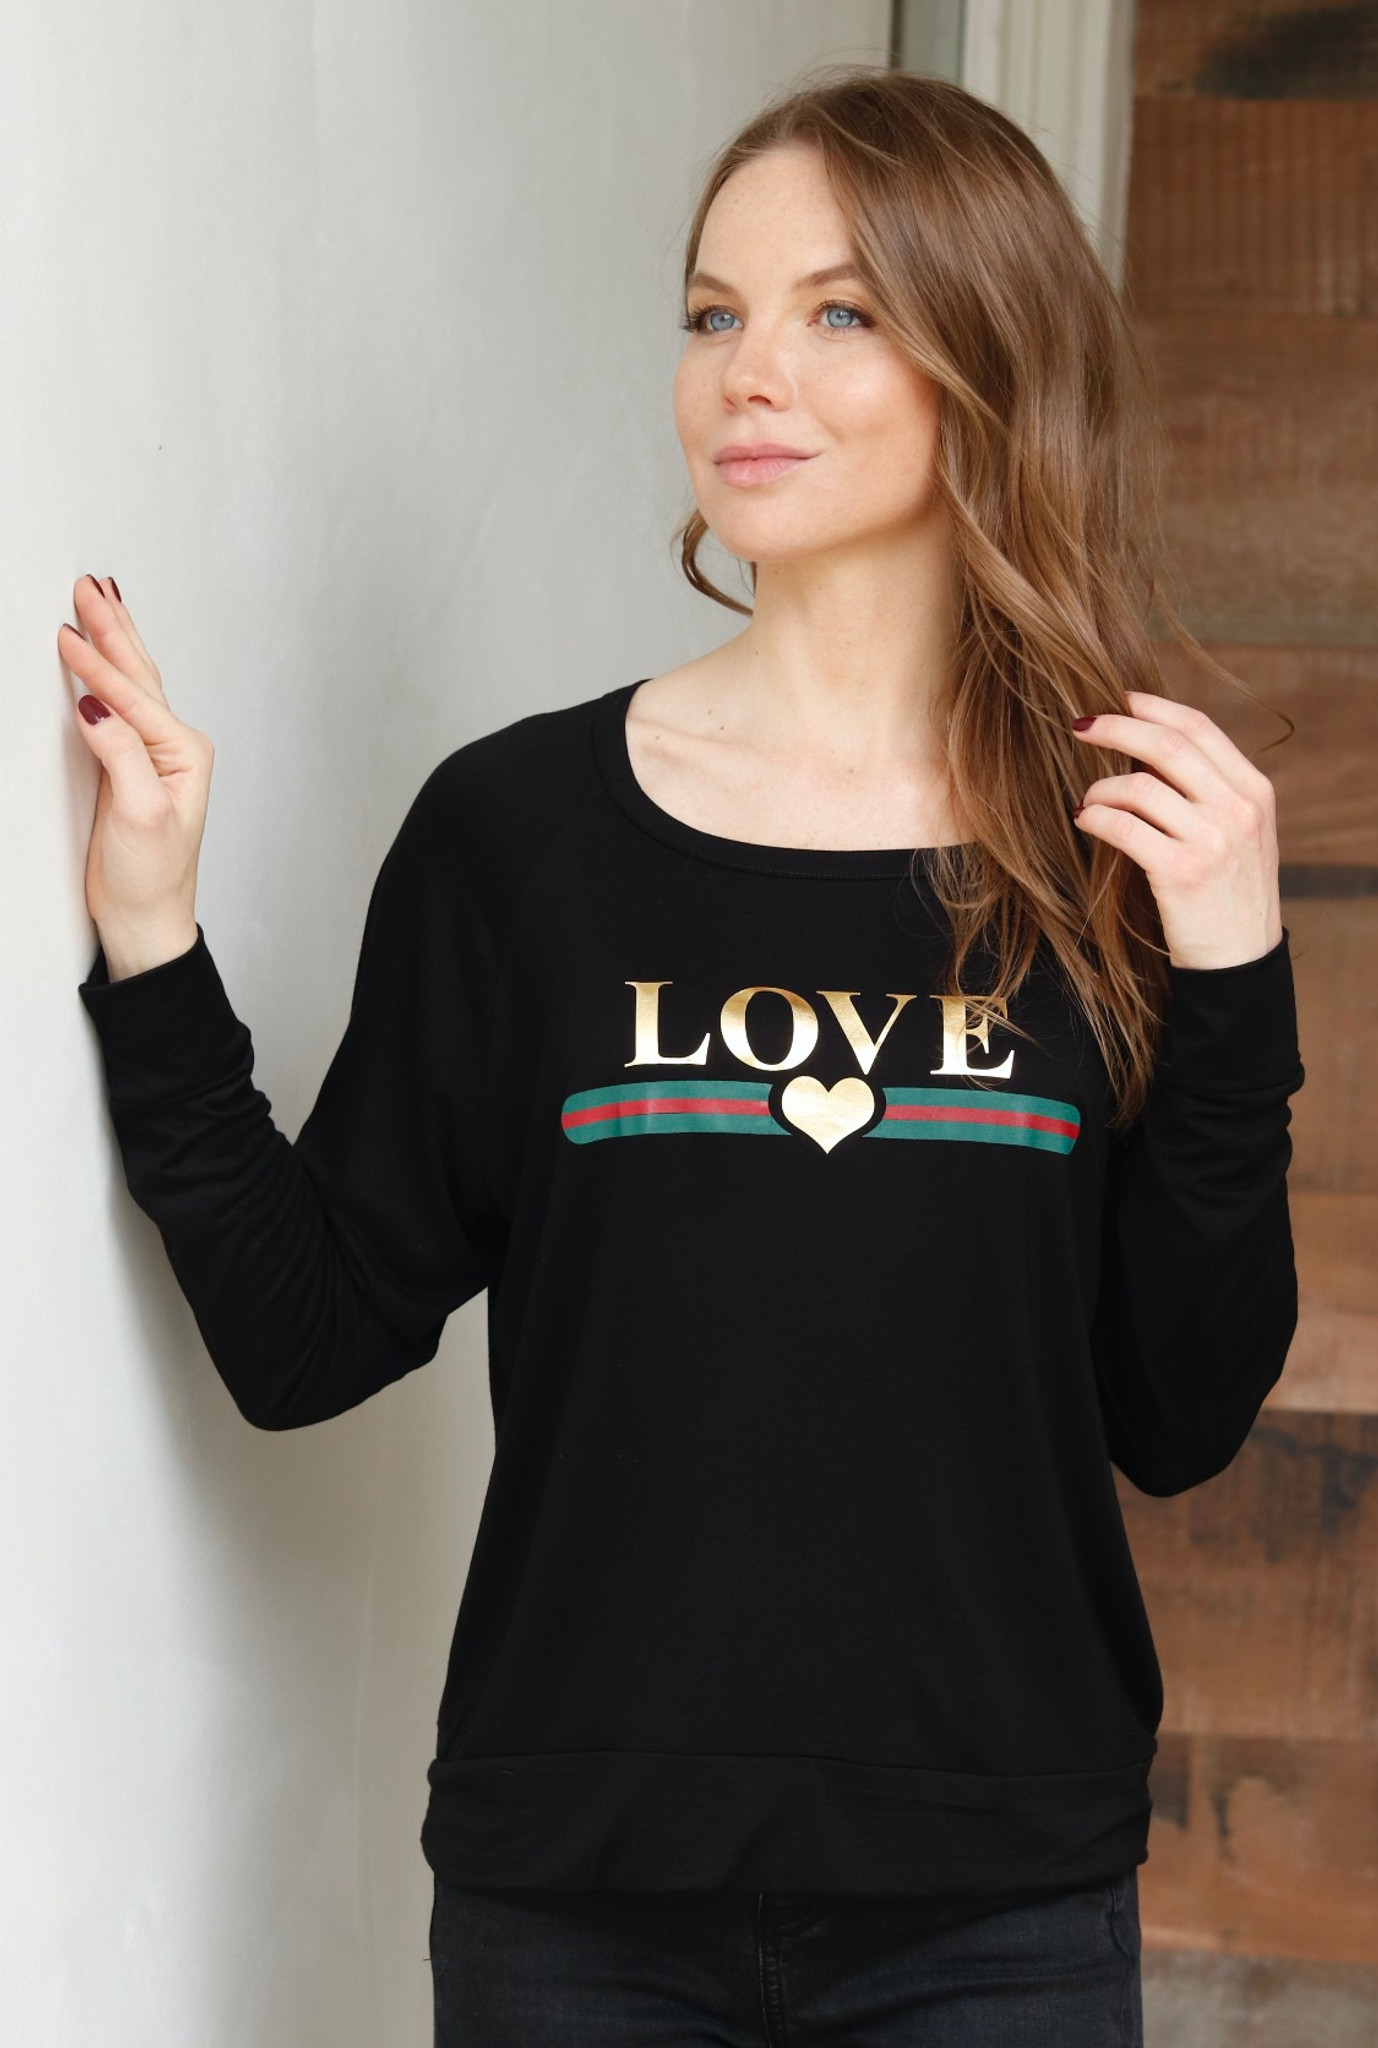 LOVE GUCCI WITH GUCCI INSPIRED STRIPE L/S OTS TOP with GOLD FOIL HEARTS on Arm (Black)